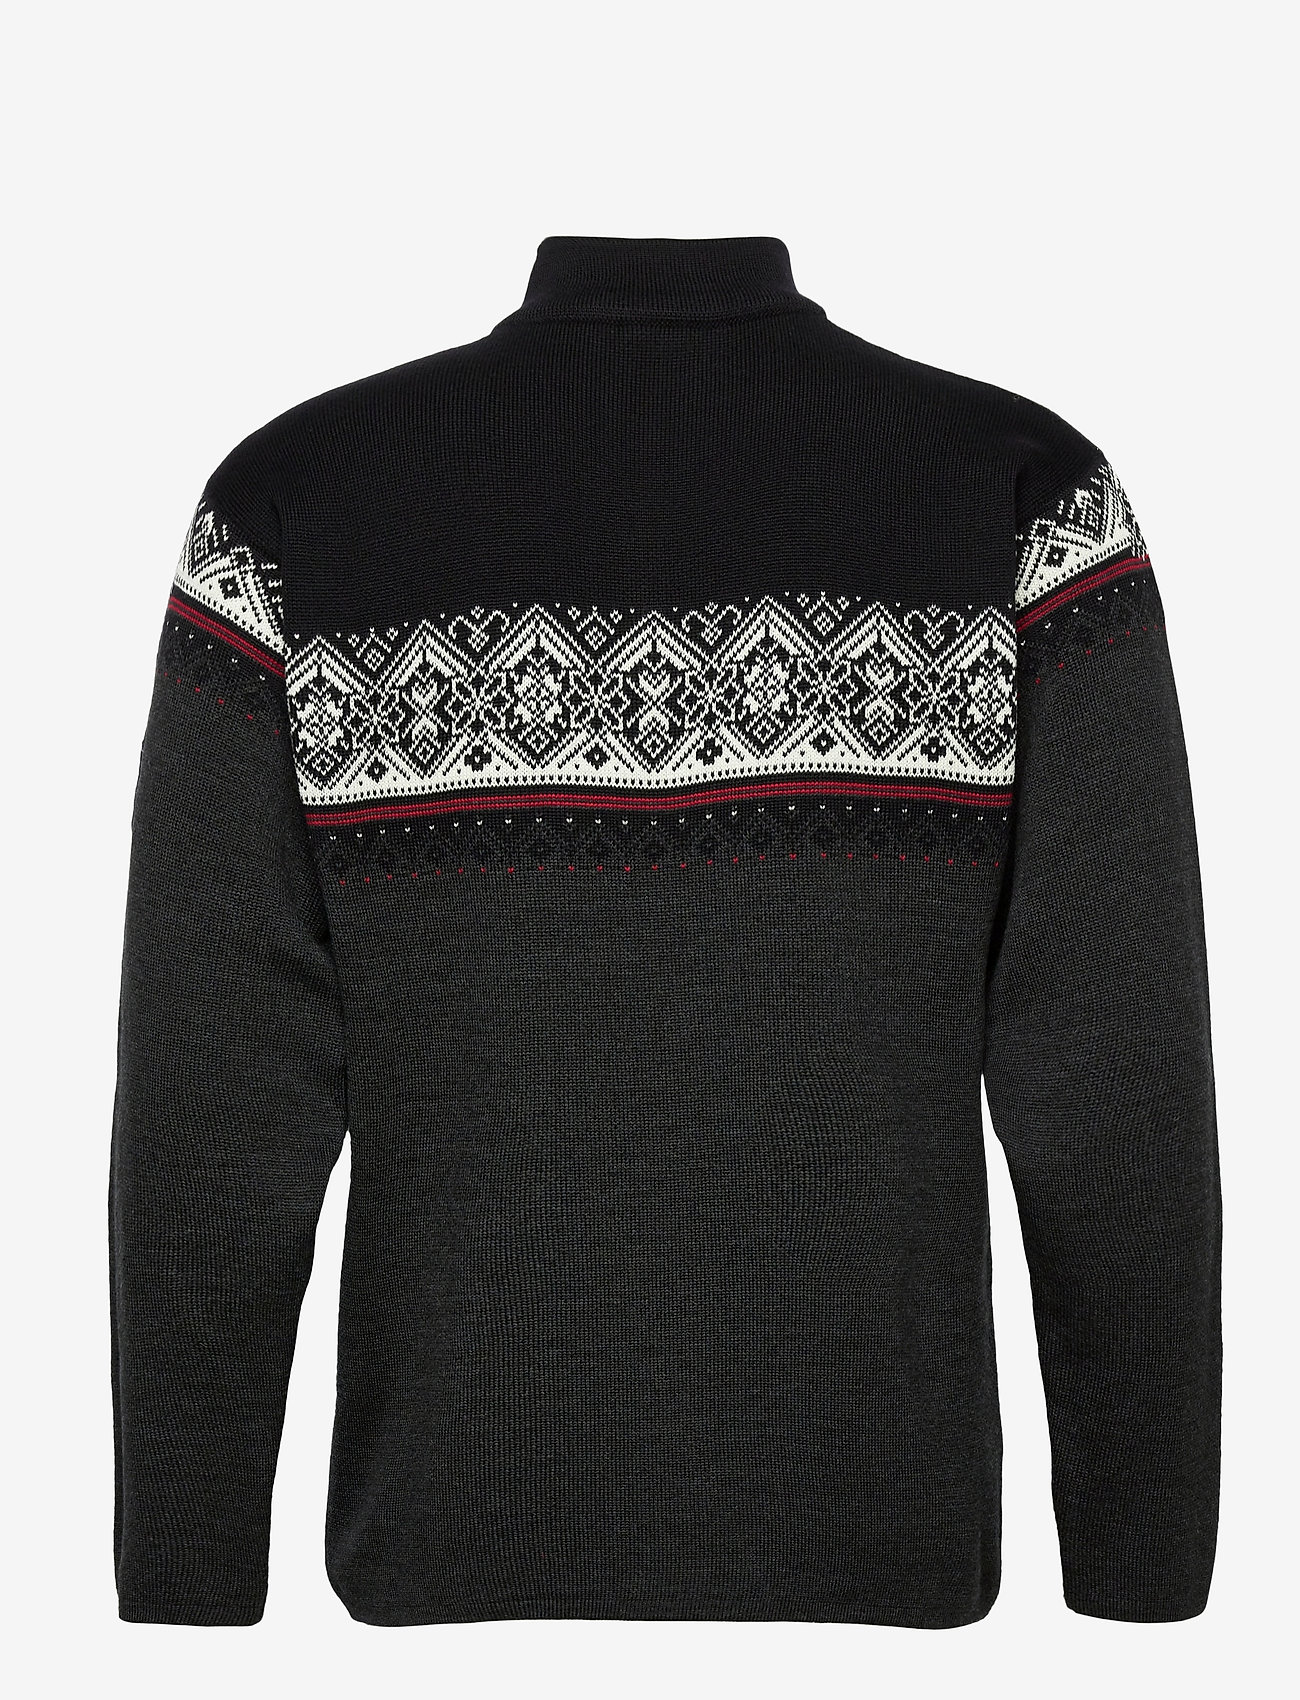 Dale of Norway Moritz Masc Sweater - Strikkevarer DARKCHARCOAL/RASPBERRY/BLACK - Menn Klær